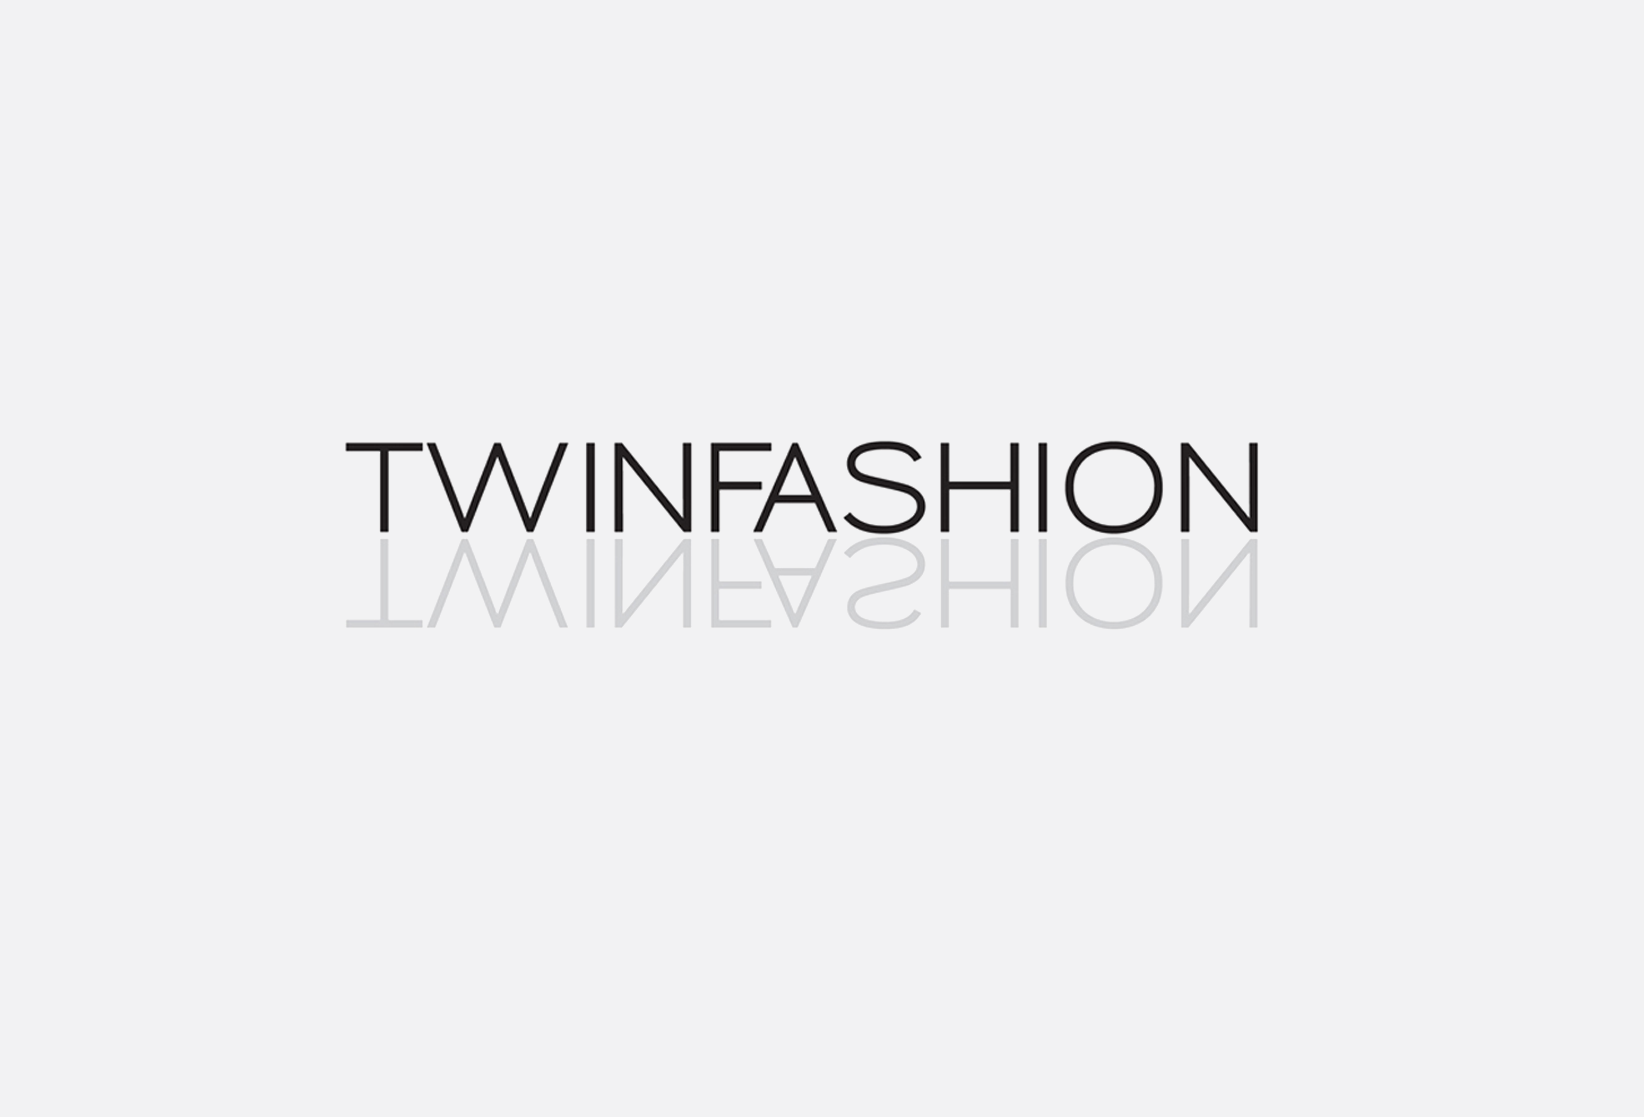 Twinfashion